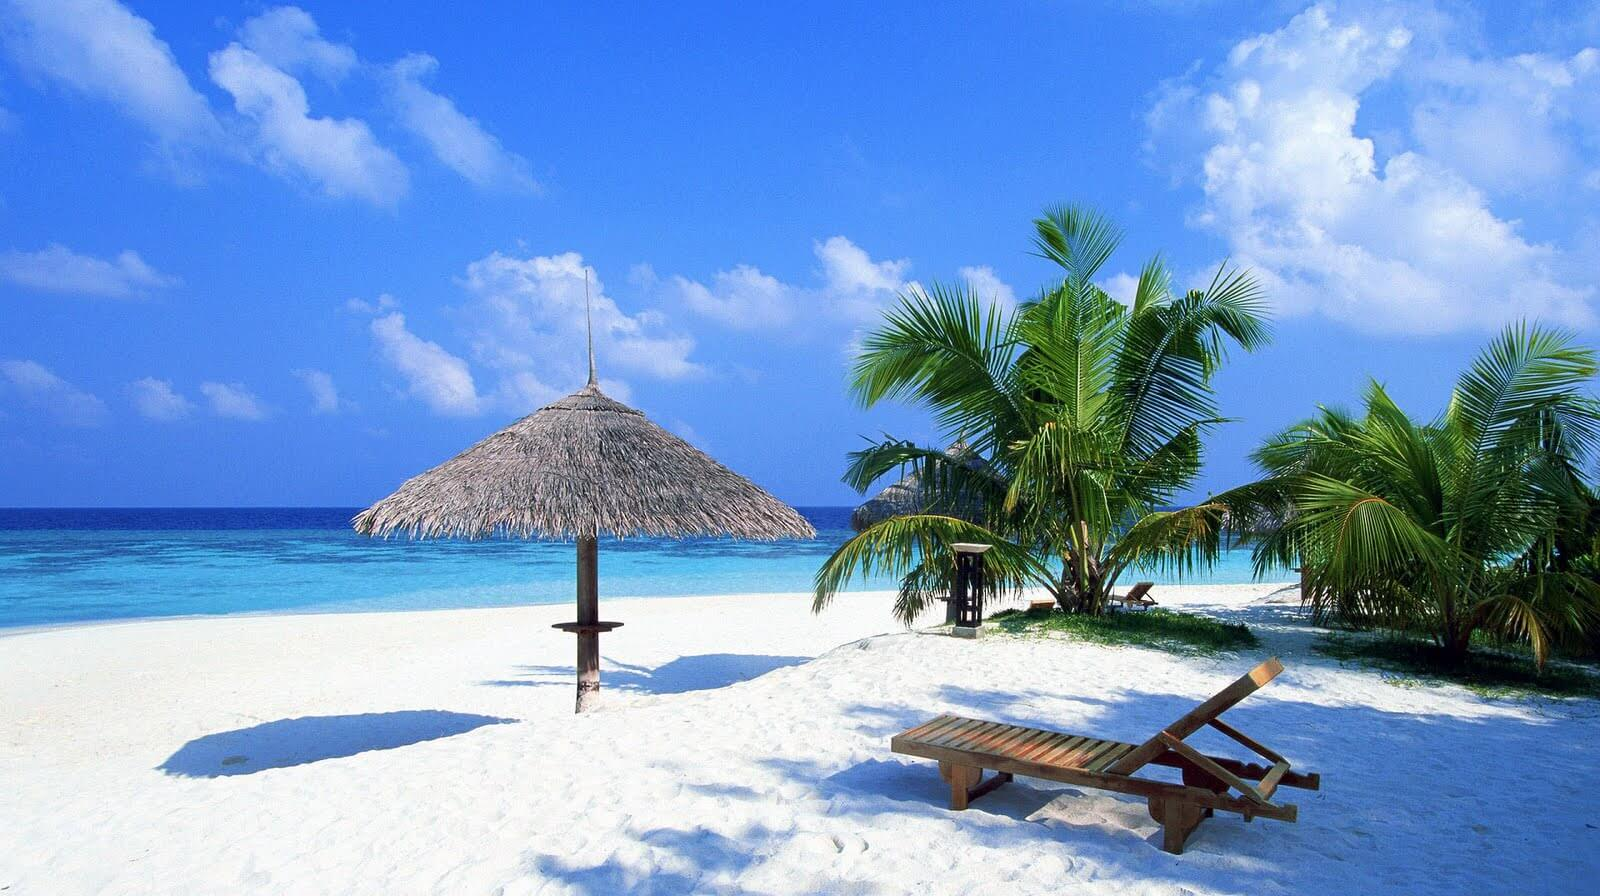 Dominican Republic - 10 Best Winter Sun Holiday Destinations For Families